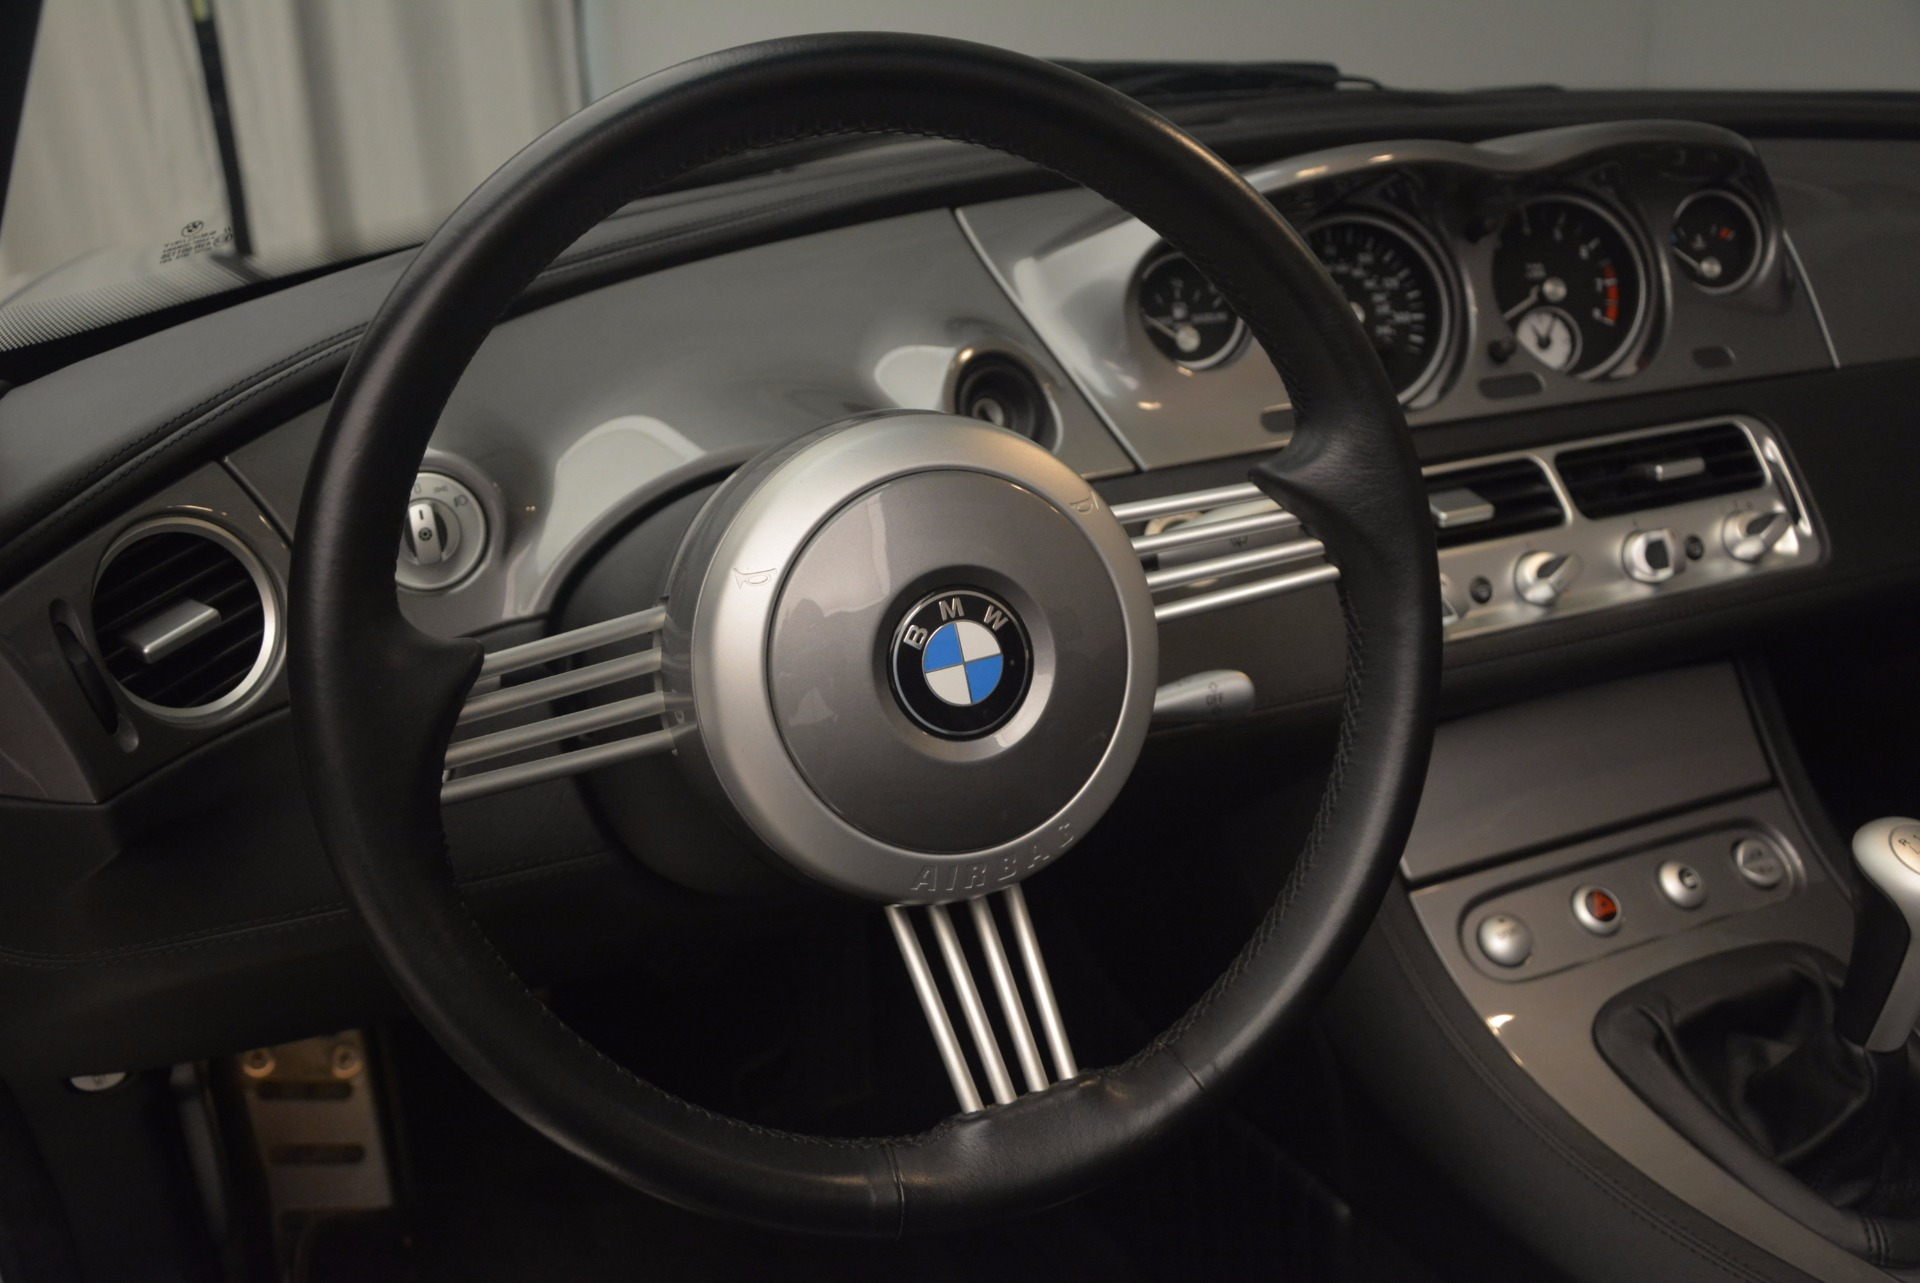 Used 2001 BMW Z8  For Sale In Greenwich, CT. Alfa Romeo of Greenwich, 7221 1293_p34